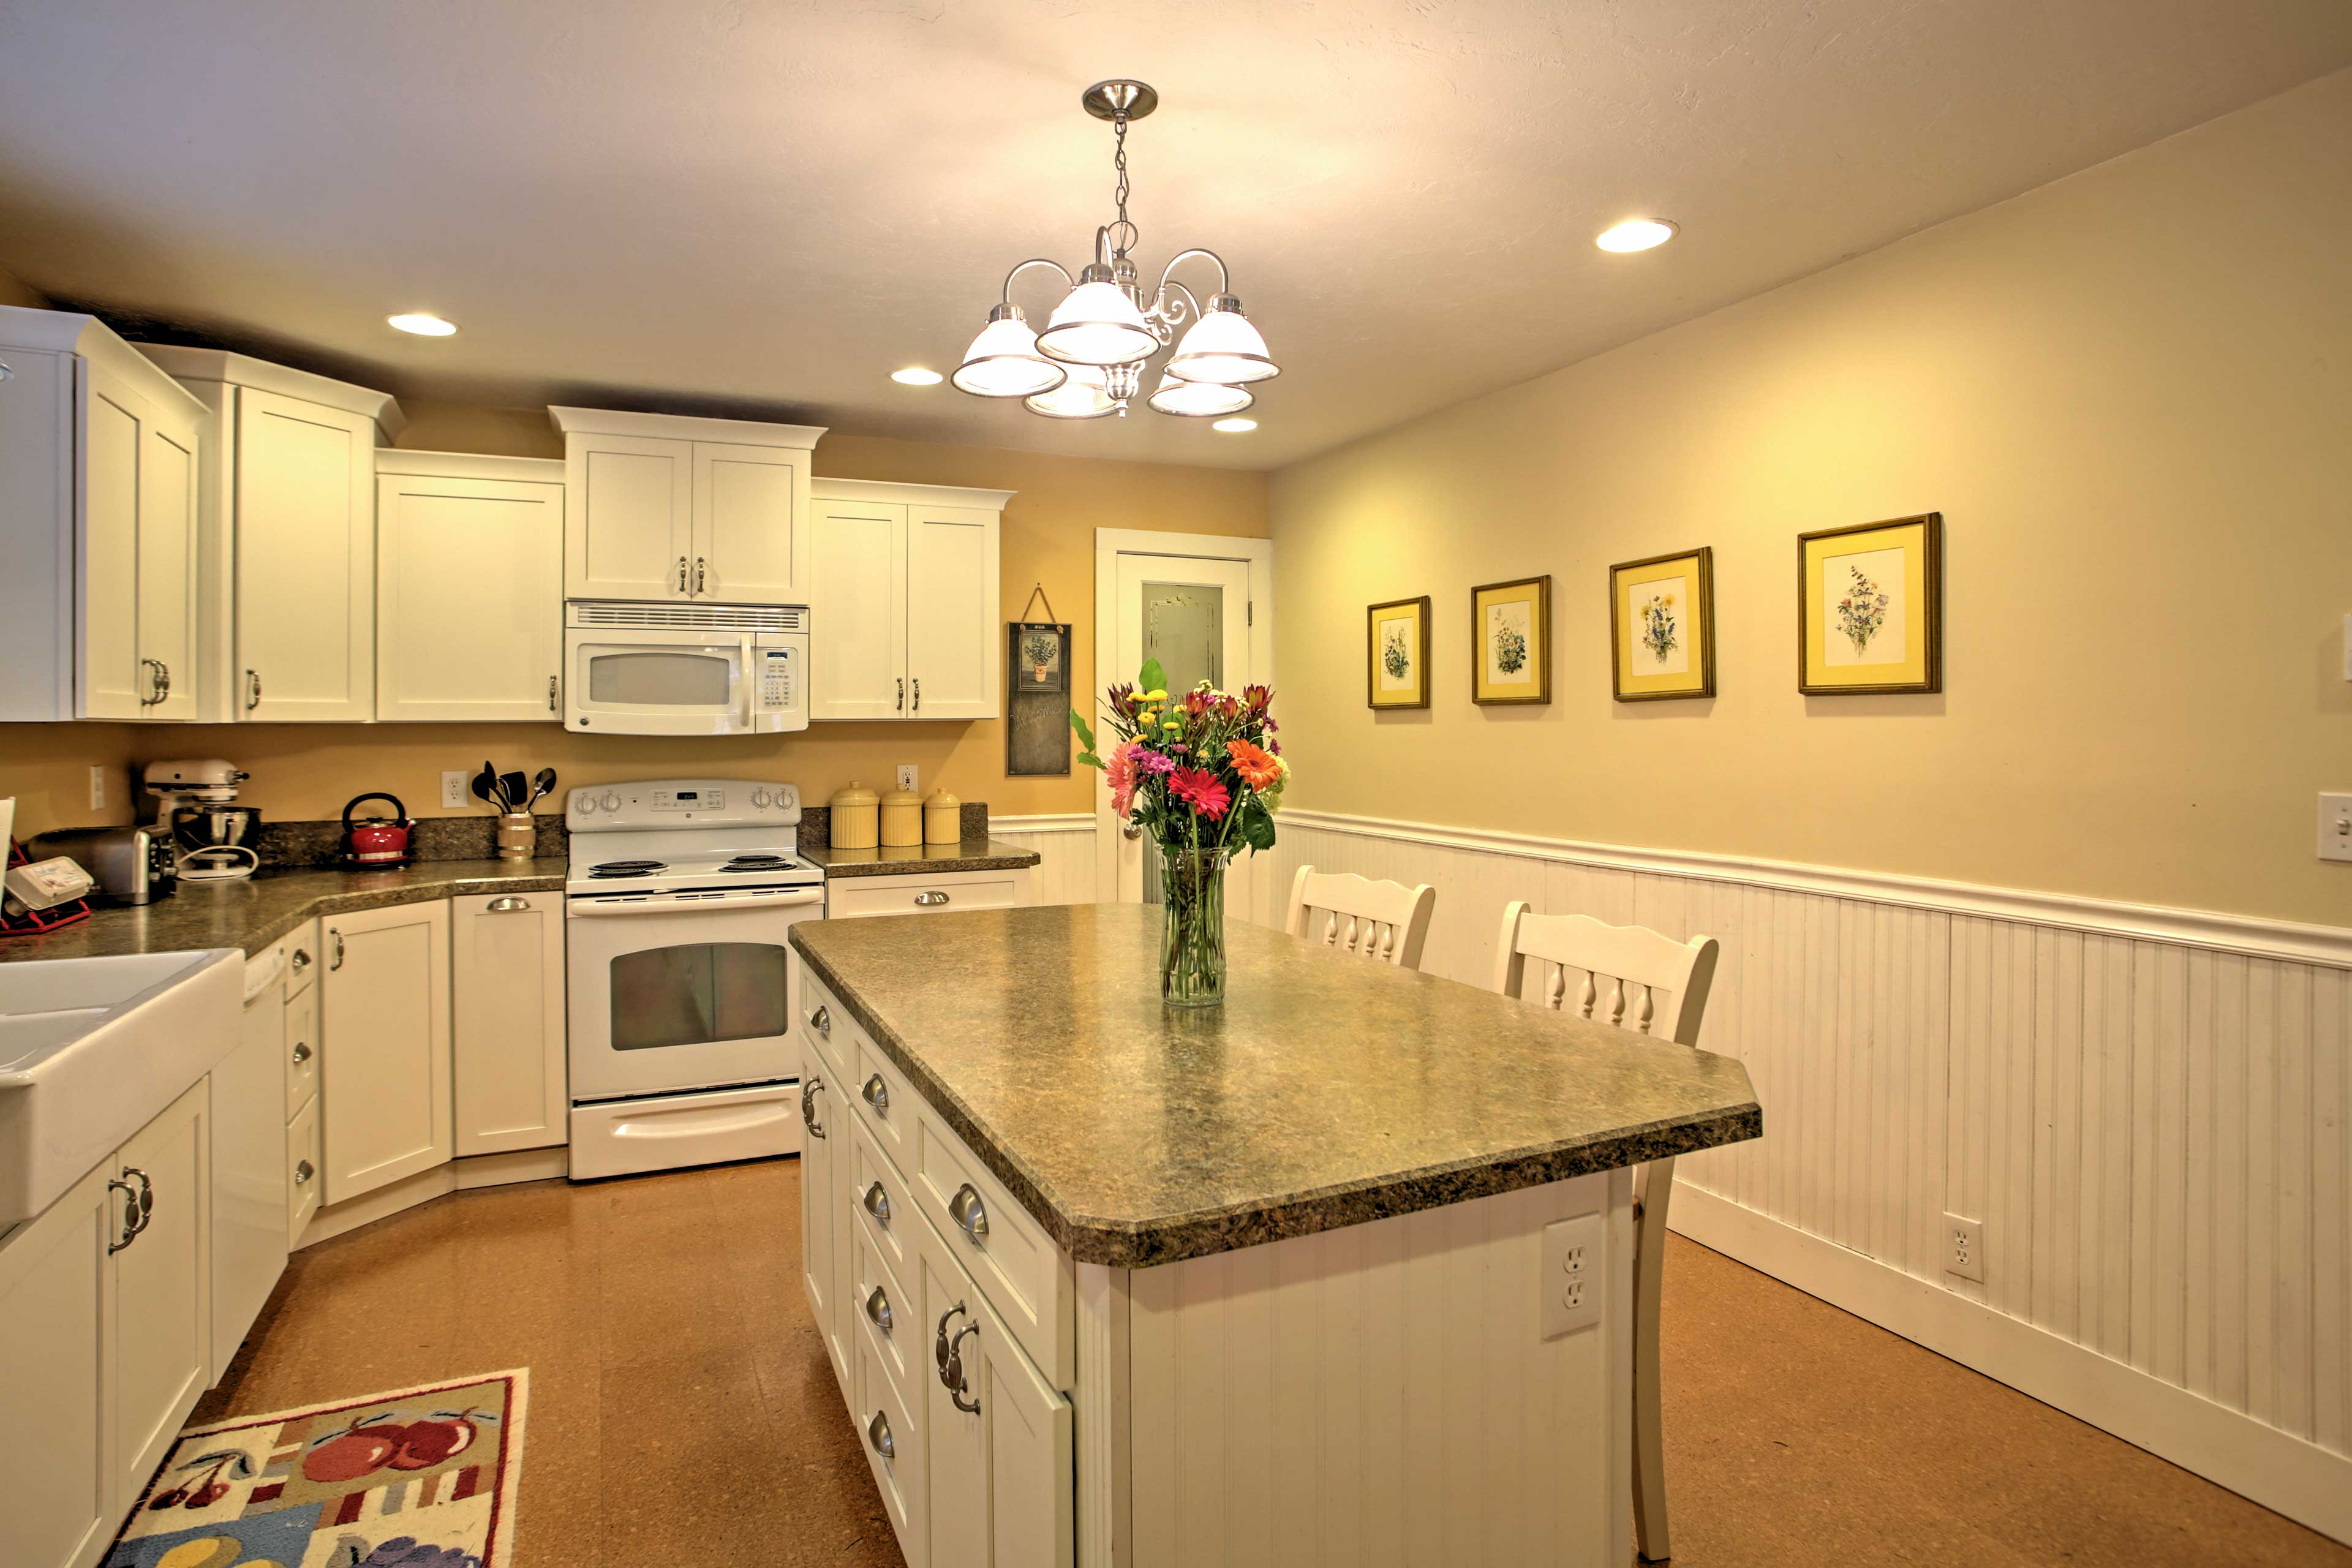 The island provides ample counterspace to work your cooking magic!